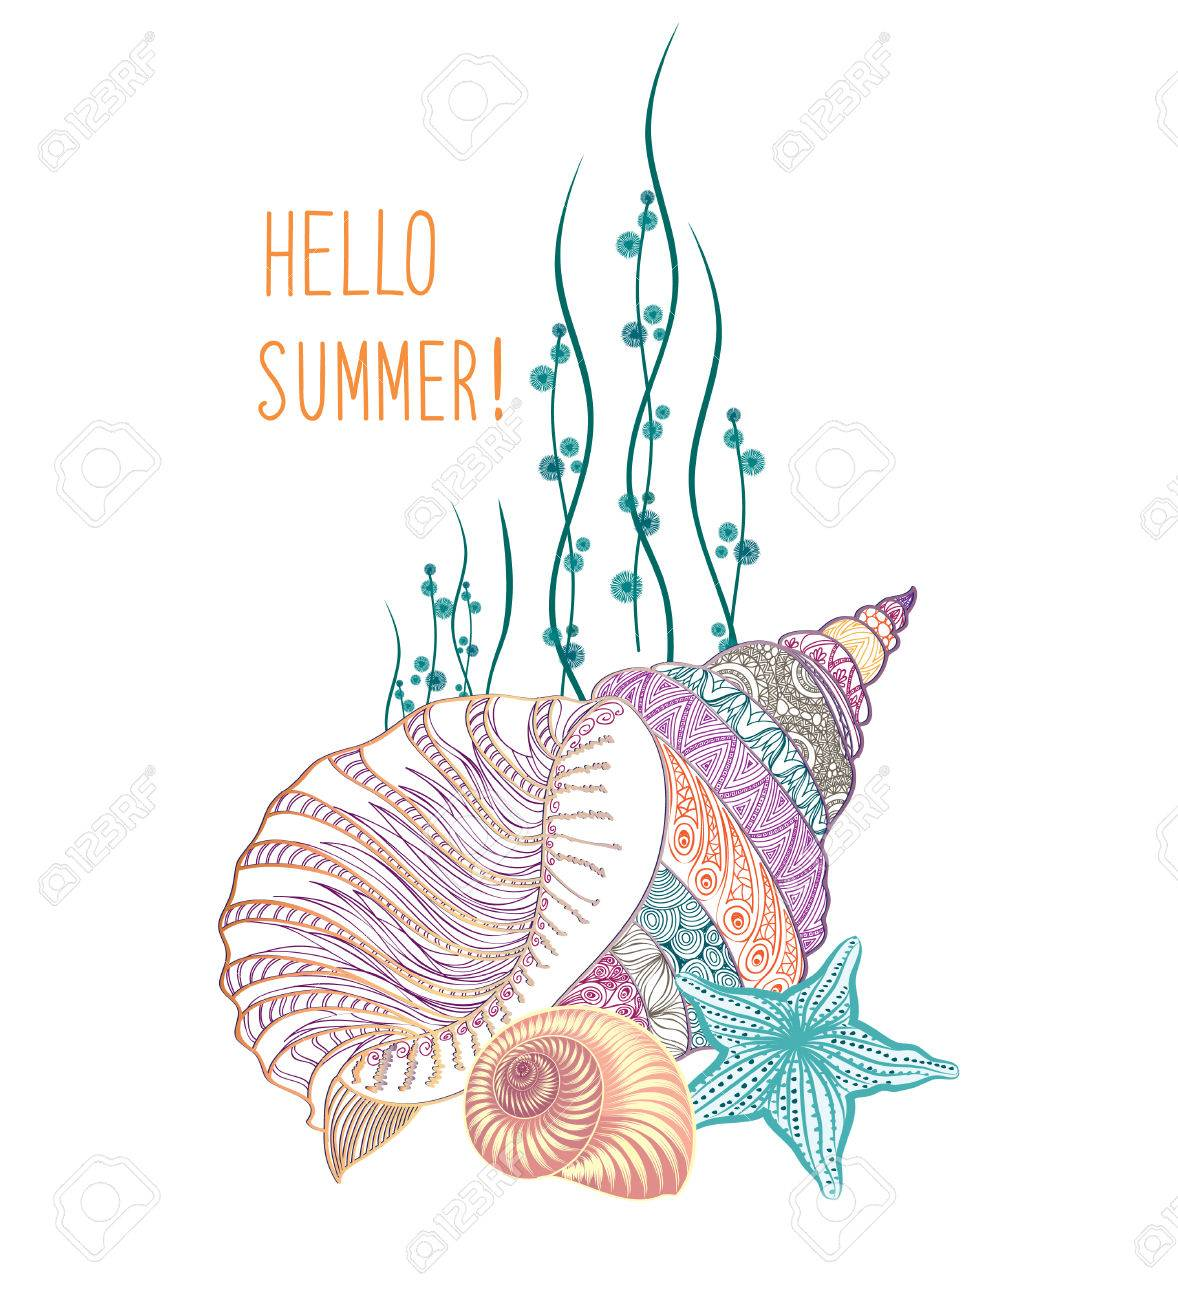 Abstract Summer Background. Summer Holidays Cover With Sea Inhabitants. Hello  Summer Greeting Card.